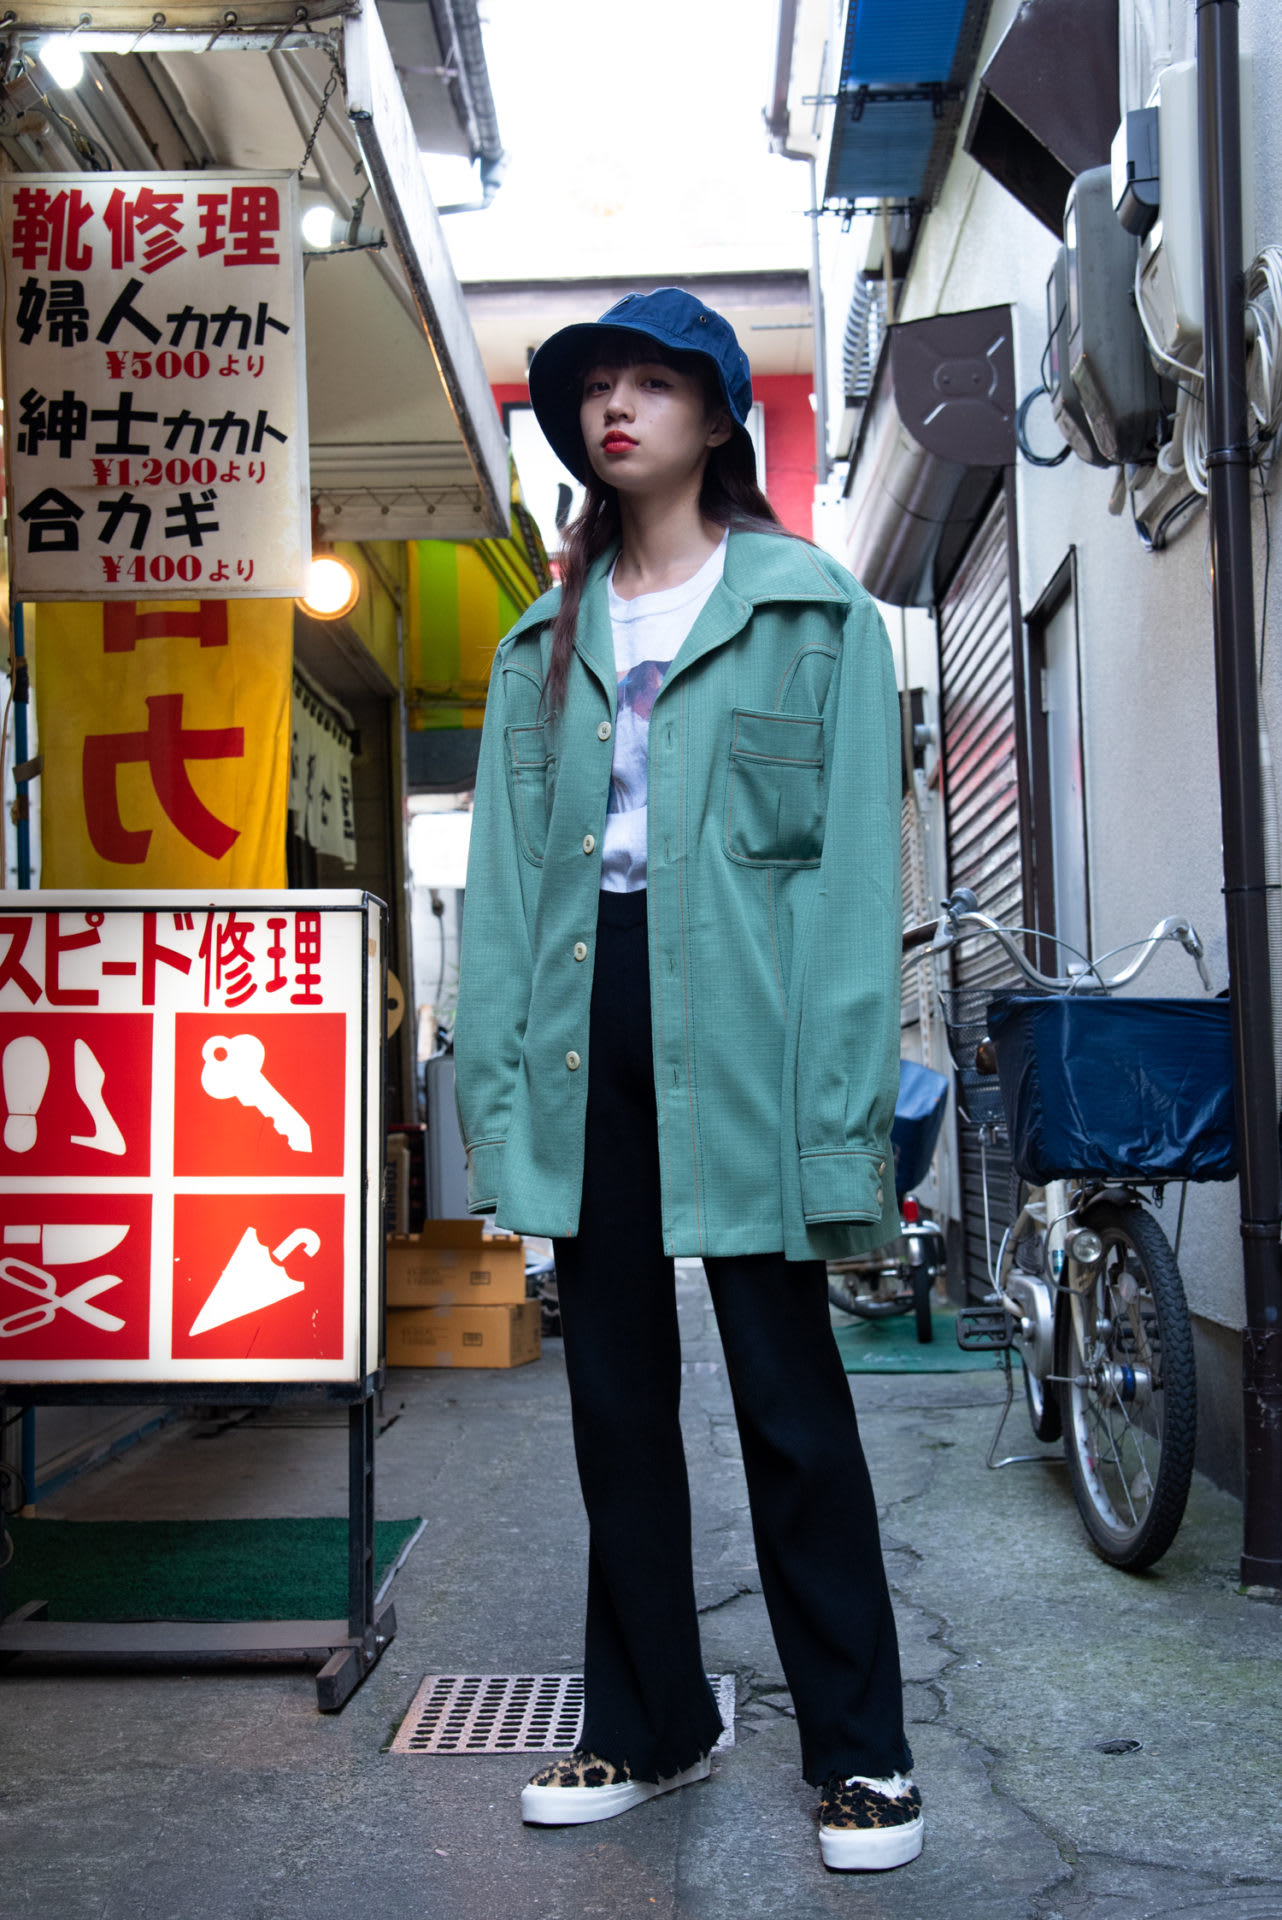 Girls On The Street Nov. 2019 – 彩音 vol. 2 –